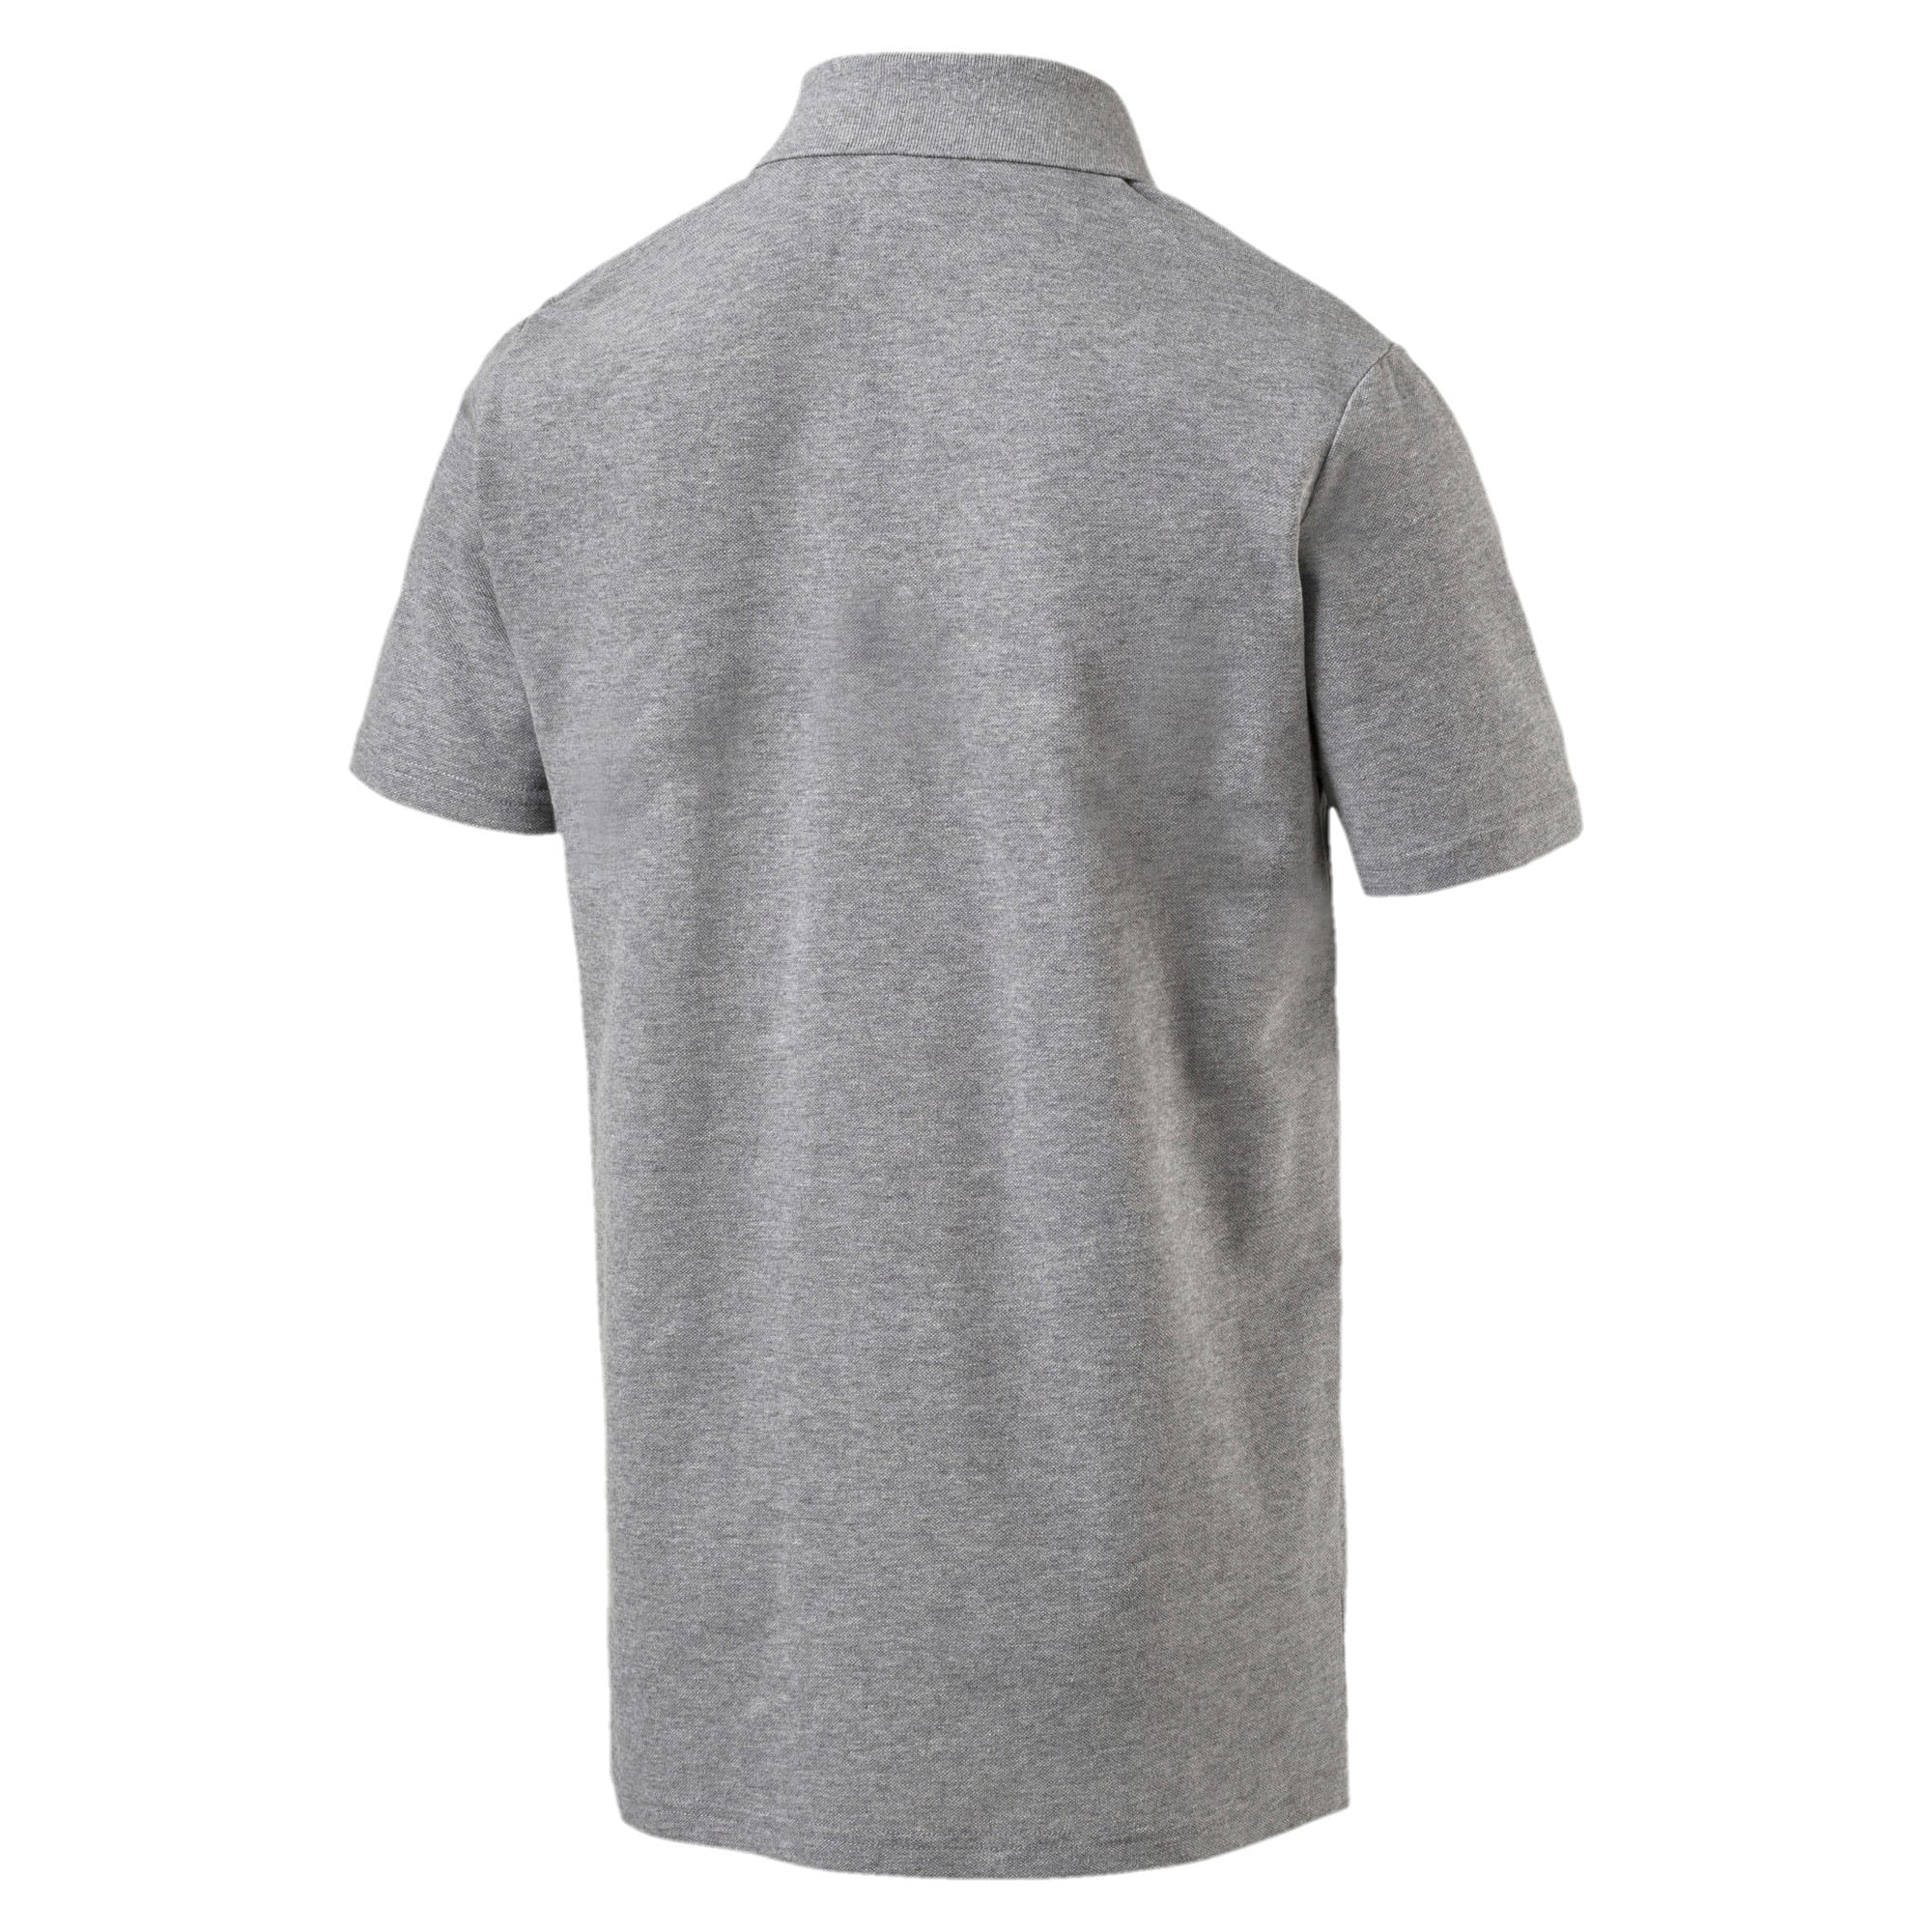 Thumbnail 4 of MERCEDES AMG PETRONAS Men's Polo, Medium Gray Heather, medium